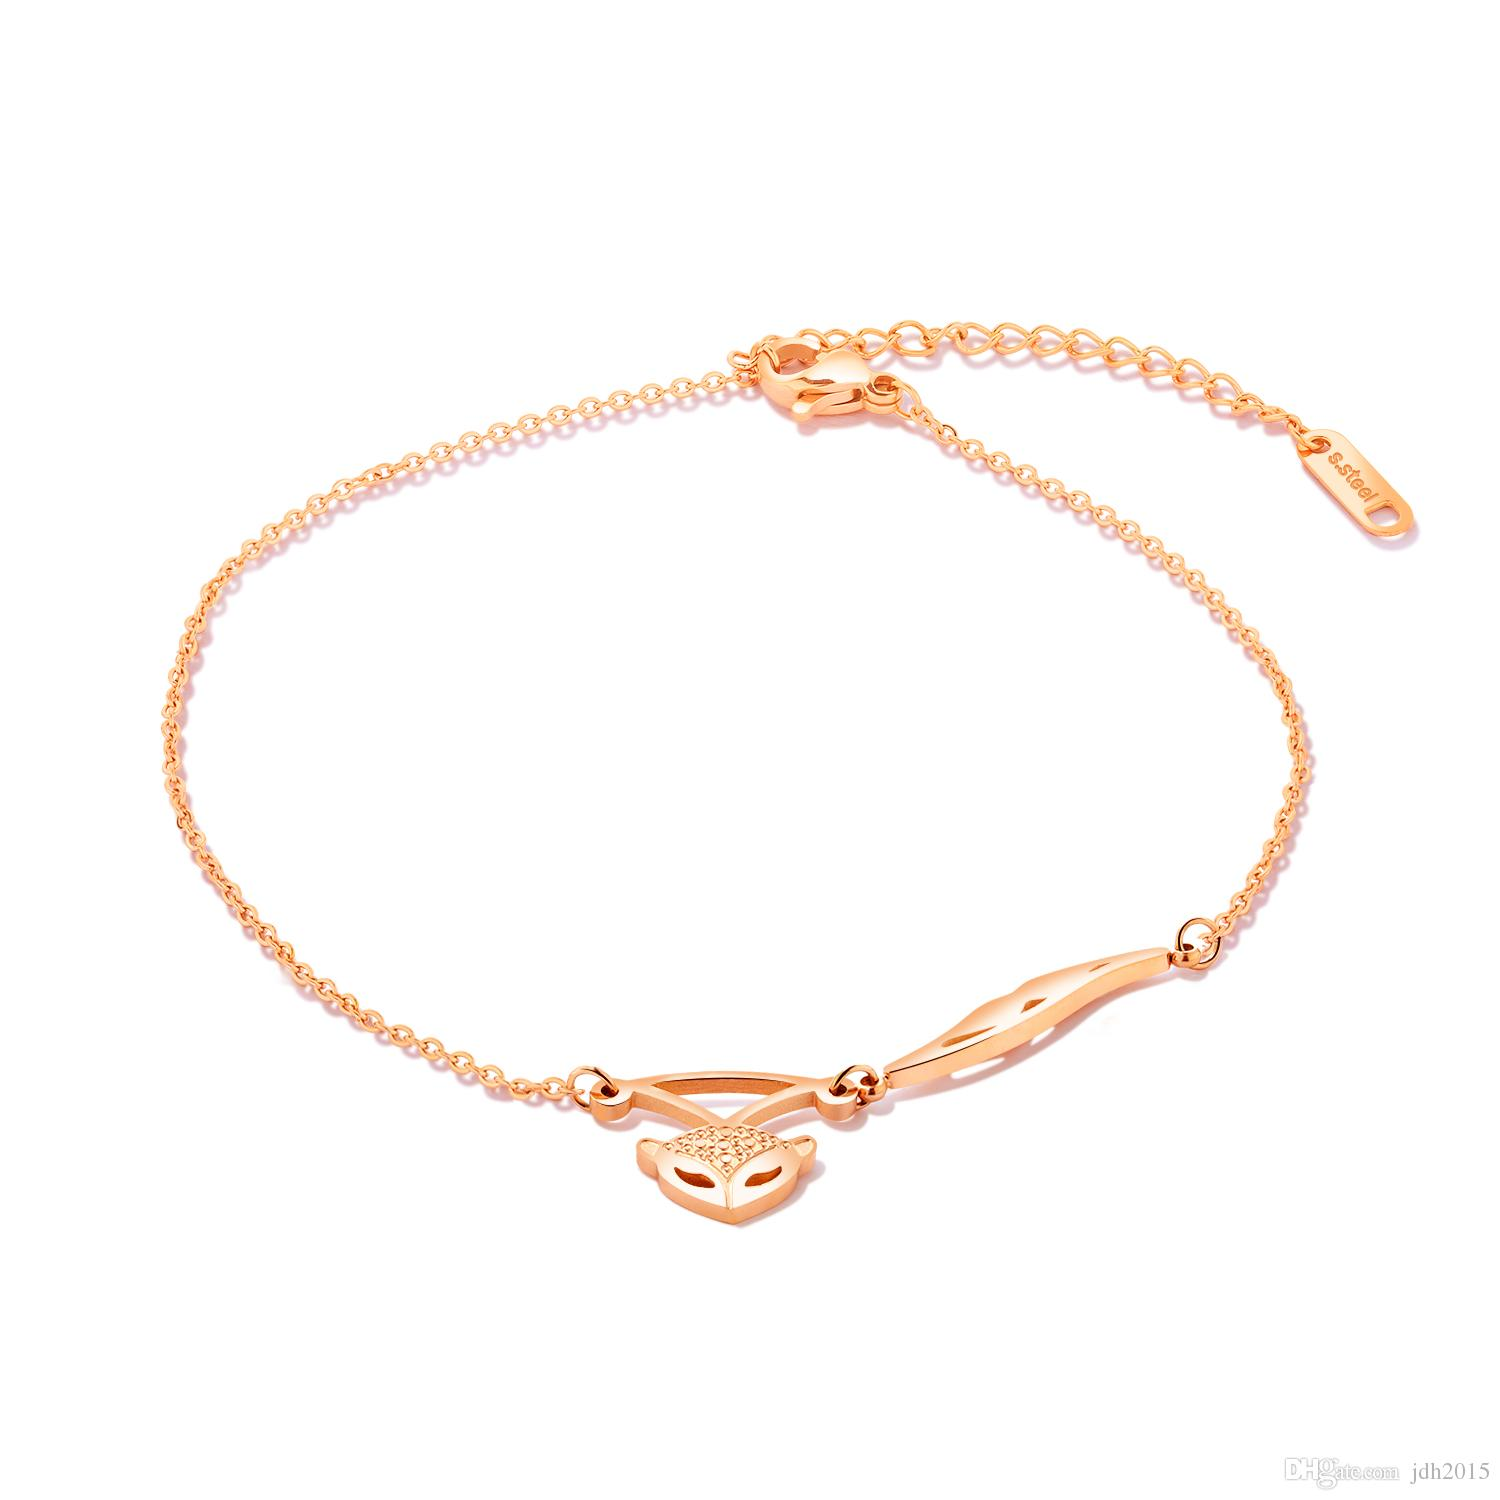 Exquisite Stainless Steel Fox Charm Link Chain Anklet Cute Rose Gold Tone Foot Bracelet